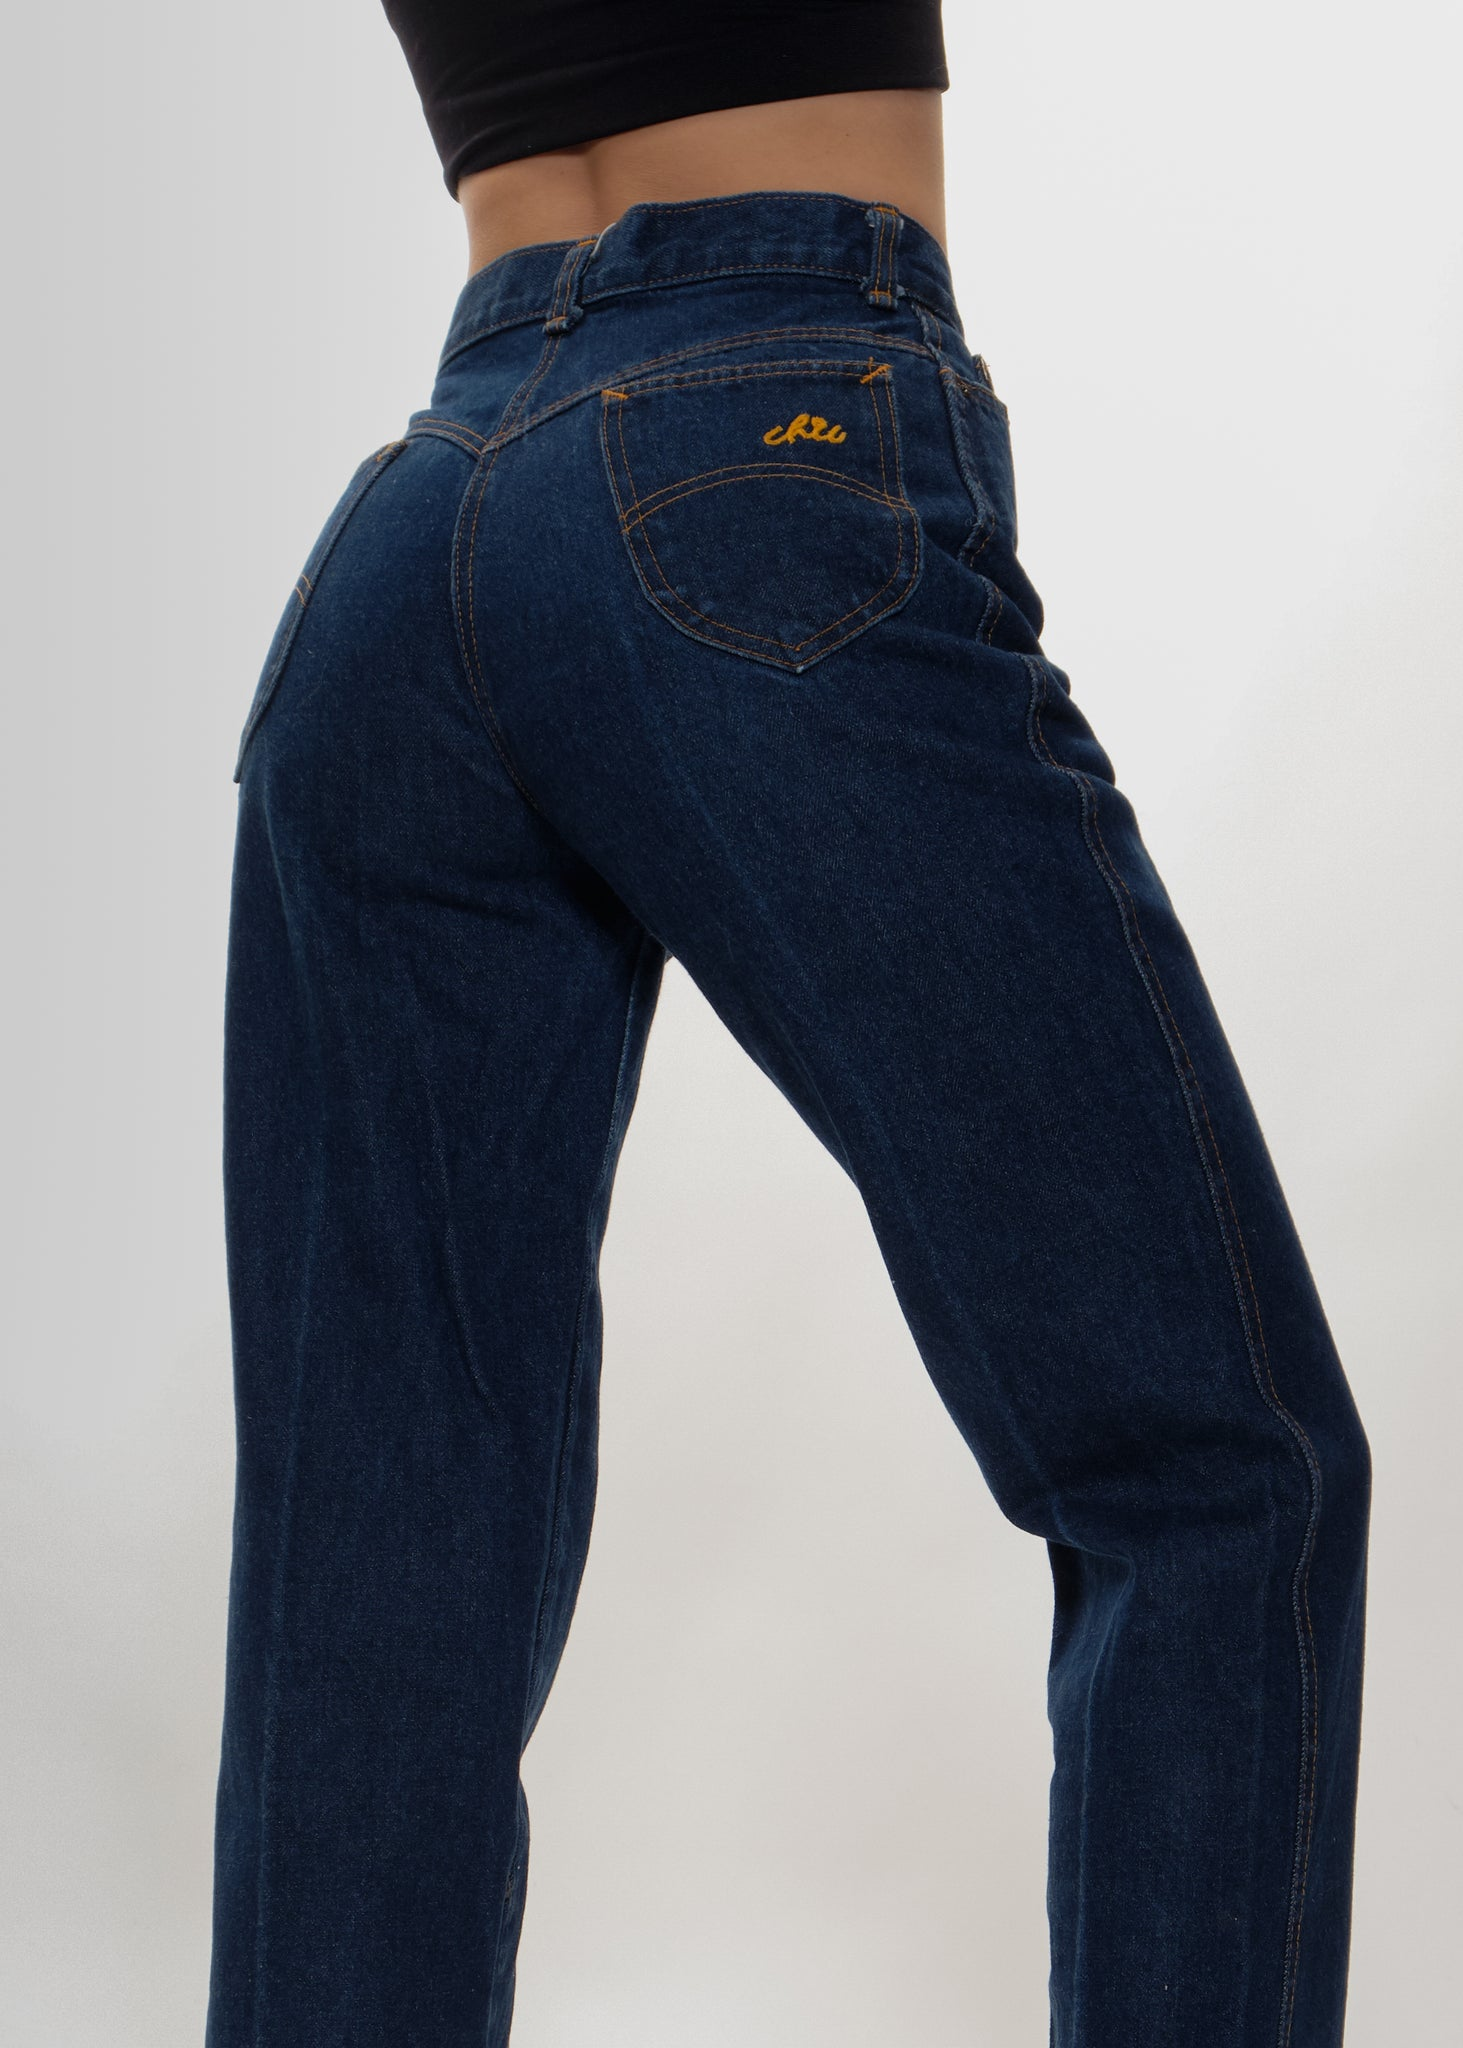 Deep Blue Chic Jeans